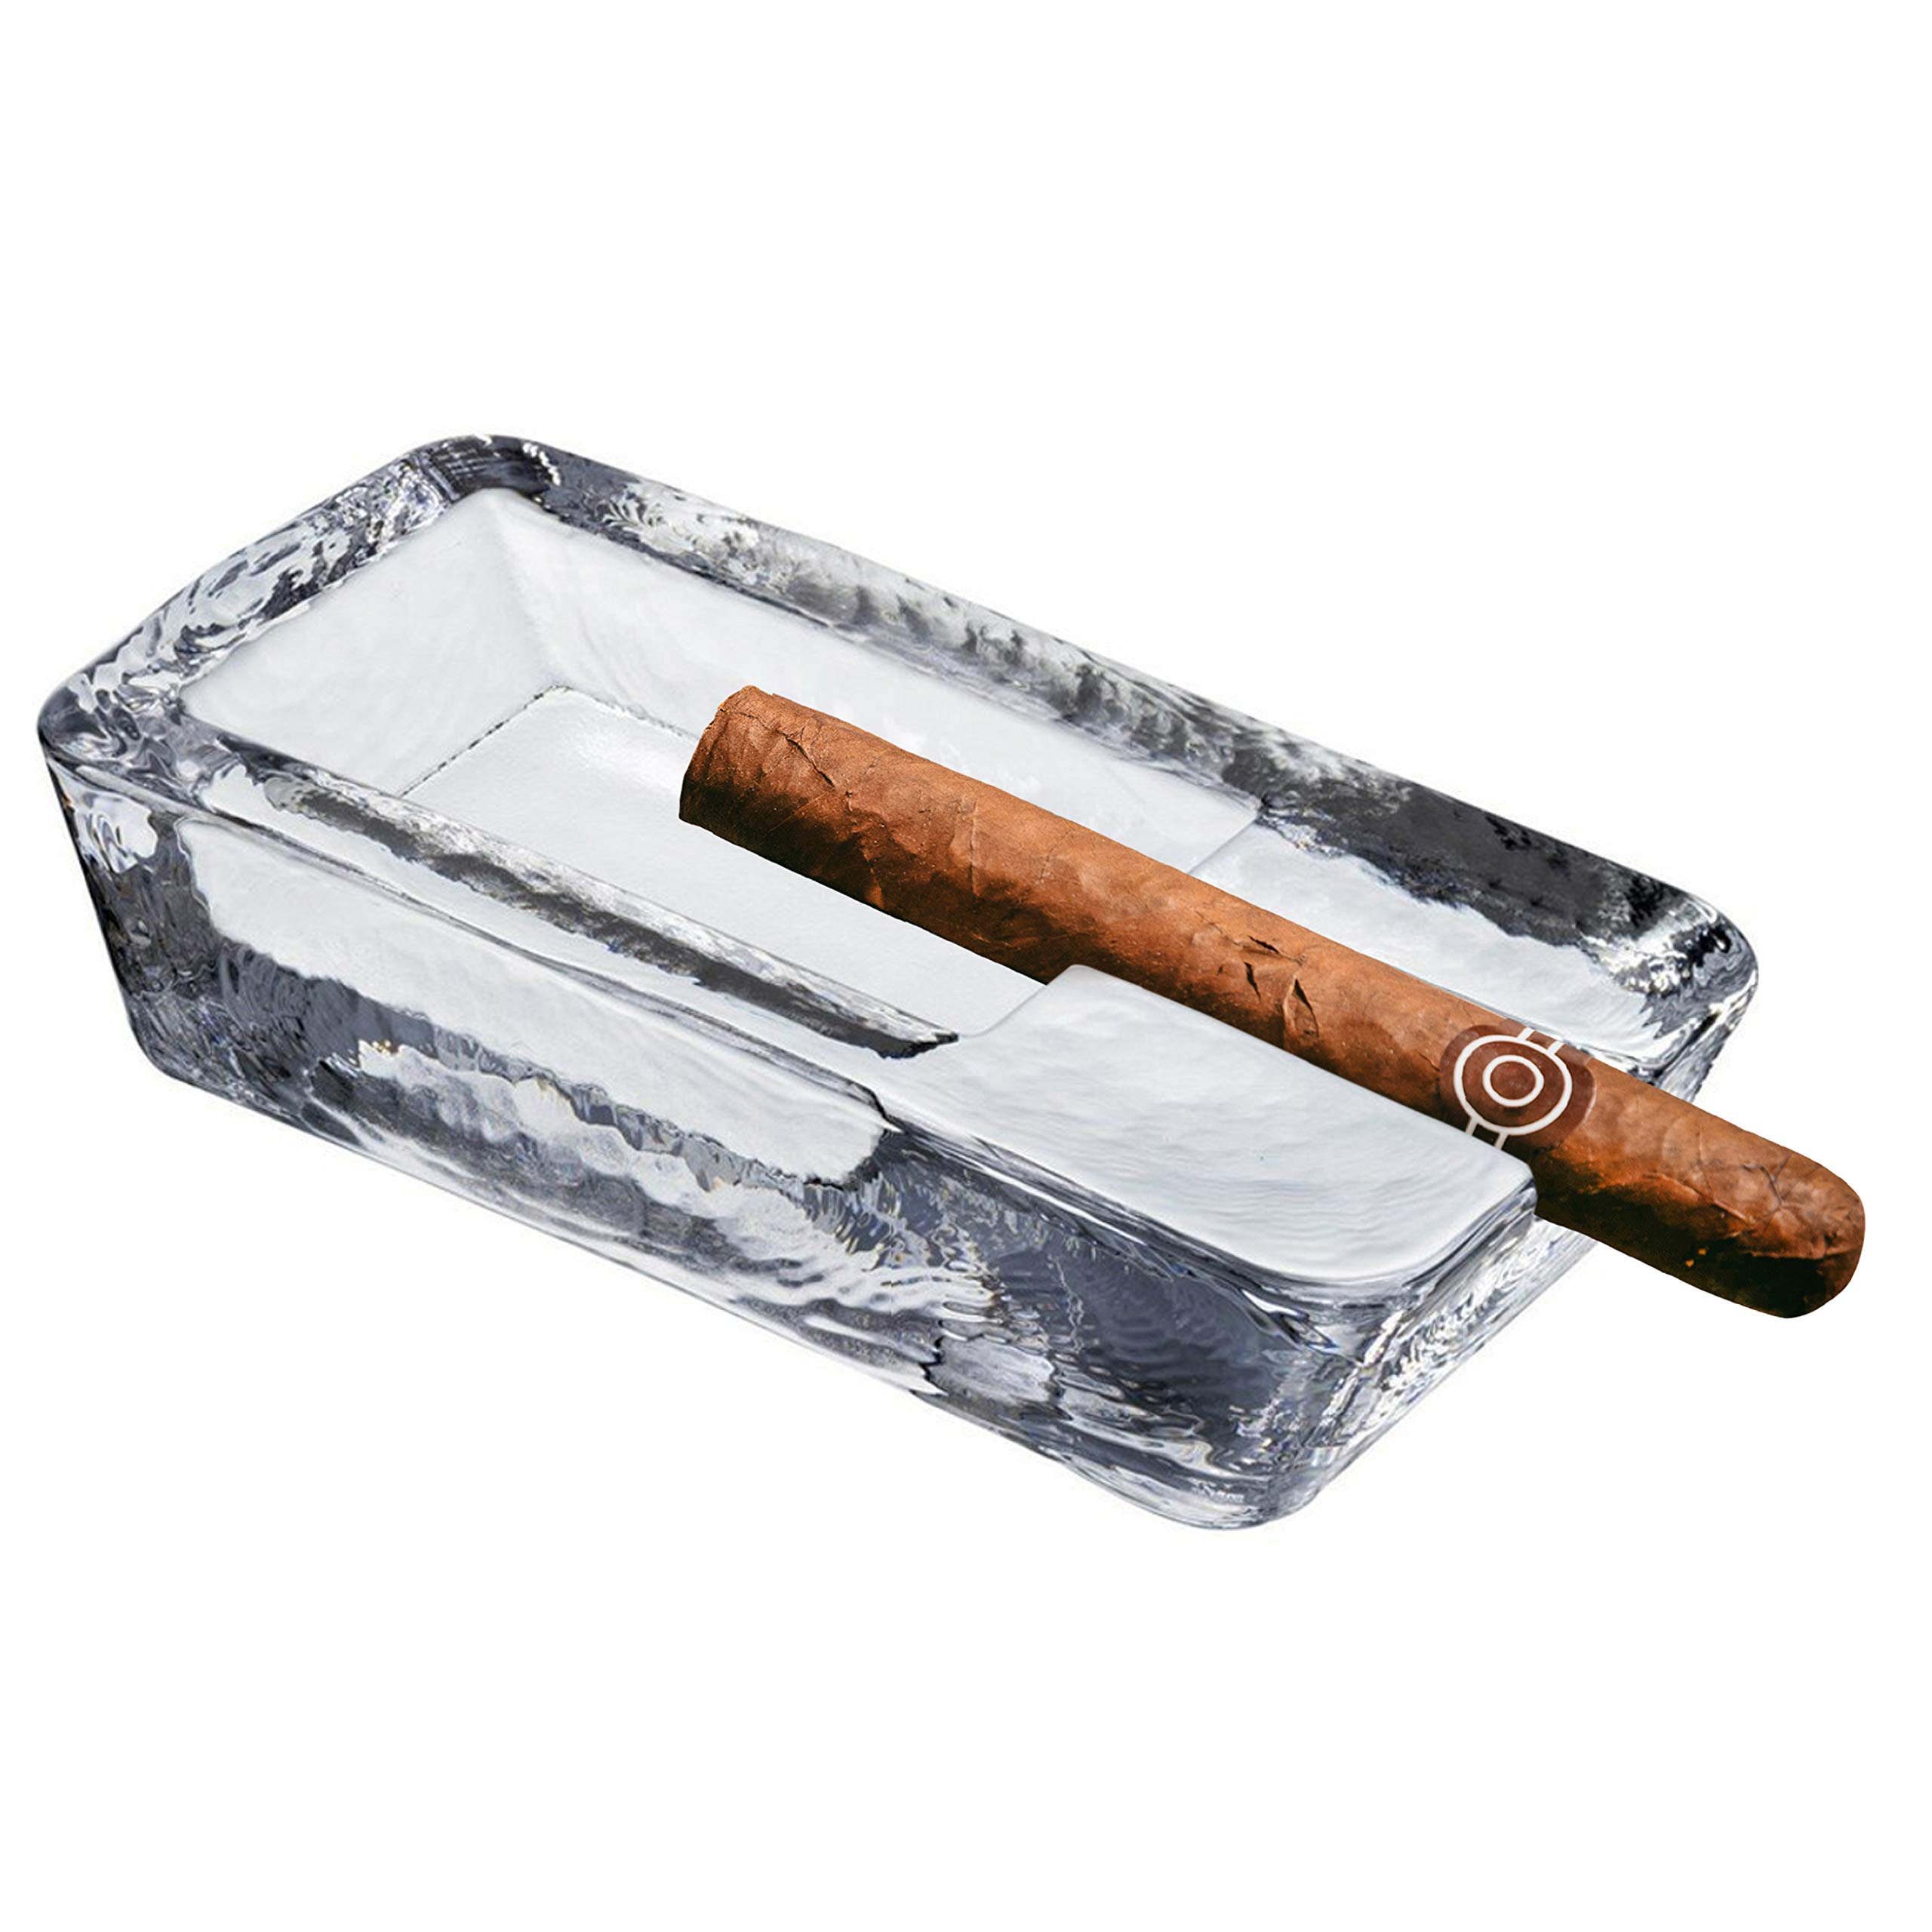 Pasabahce Crystal Glass Heavy Cigar Ashtray for Patio   2.57 Lbs, Large Handmade, Luxury   Outdoor, Indoor, Home, Office, Hotel, Pool, Restaurant